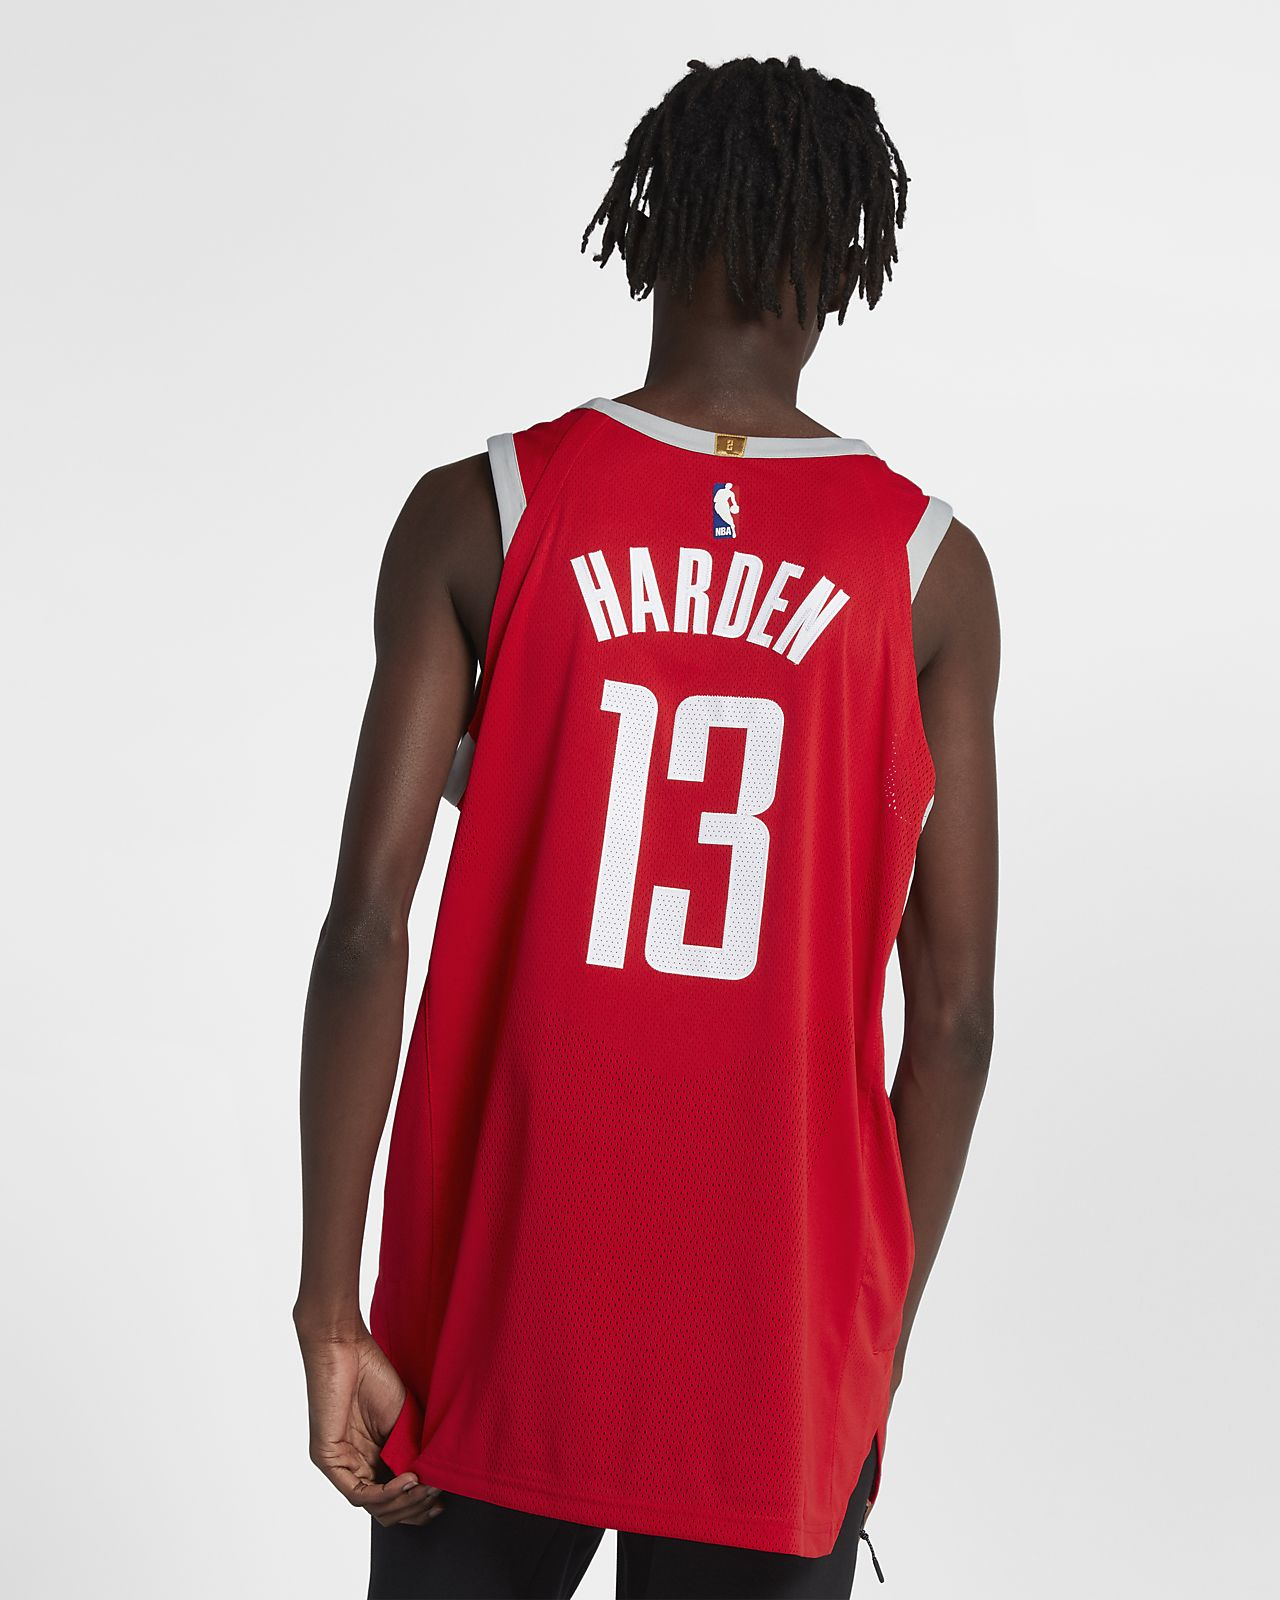 e486aa3f1 Men s Nike NBA Connected Jersey. James Harden Icon Edition Authentic (Houston  Rockets)